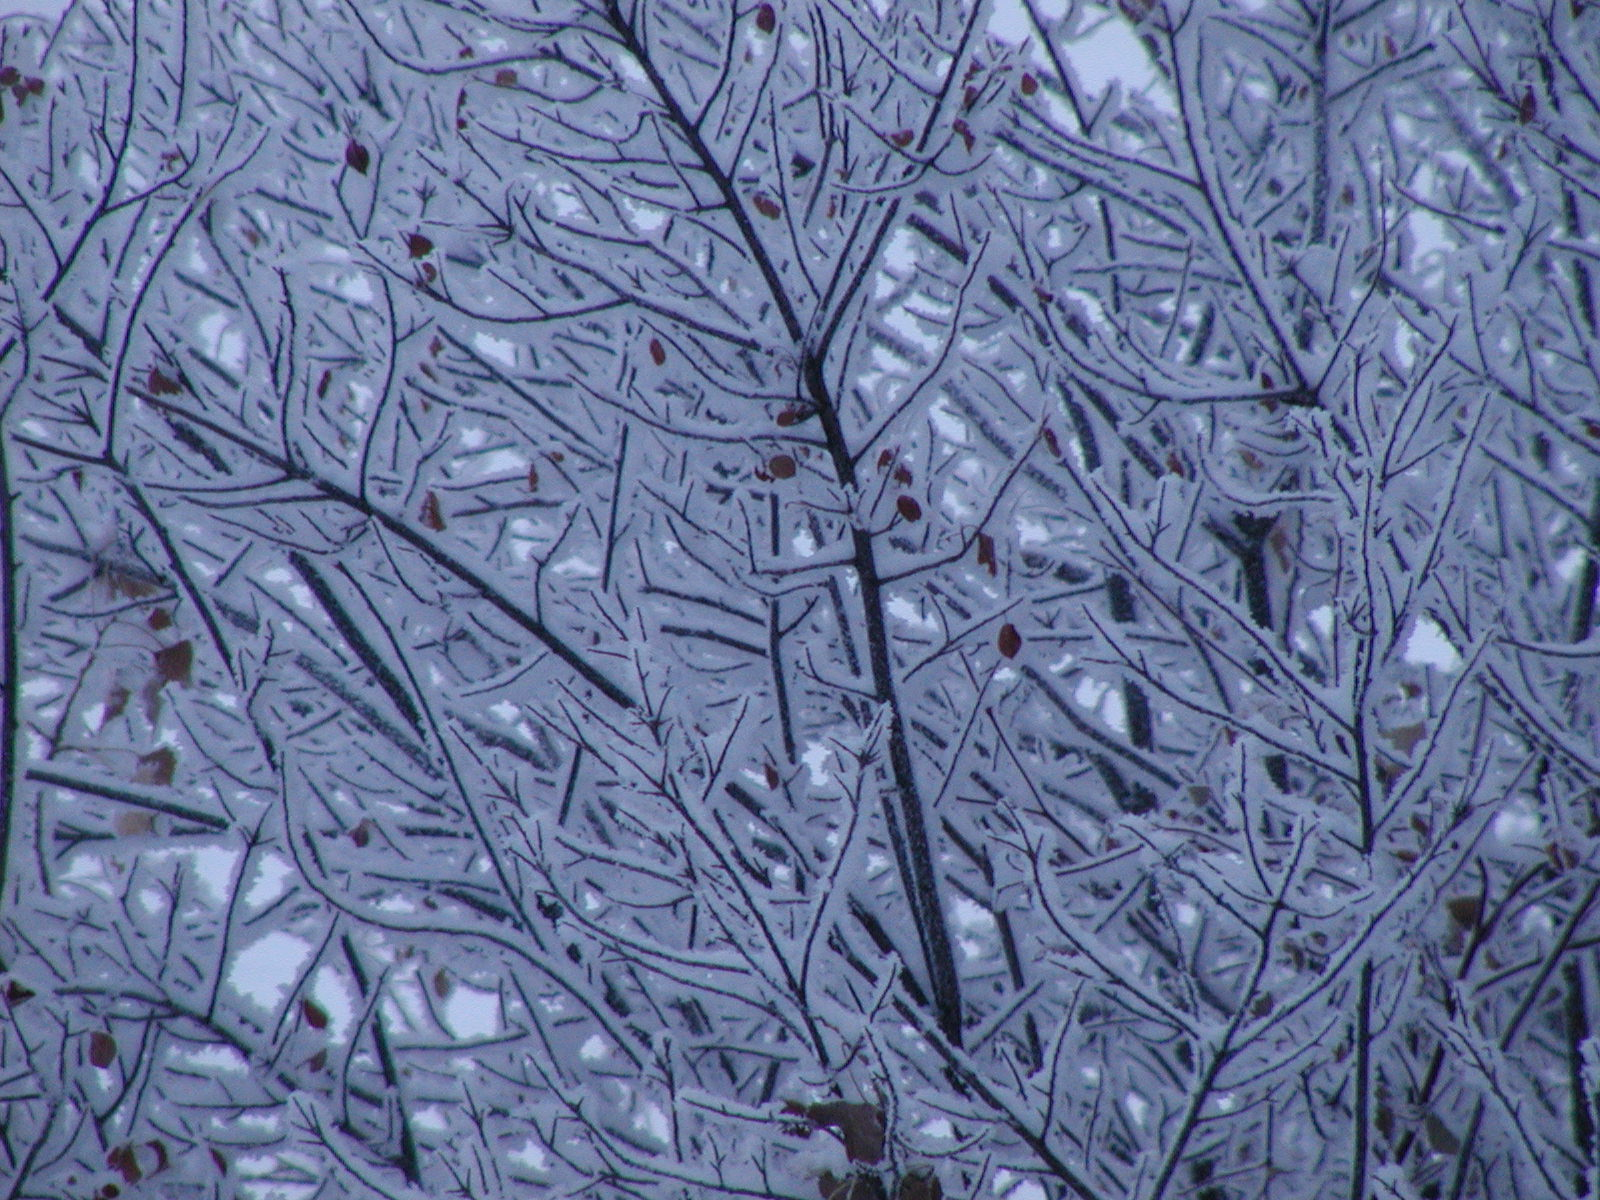 Frosted branches.